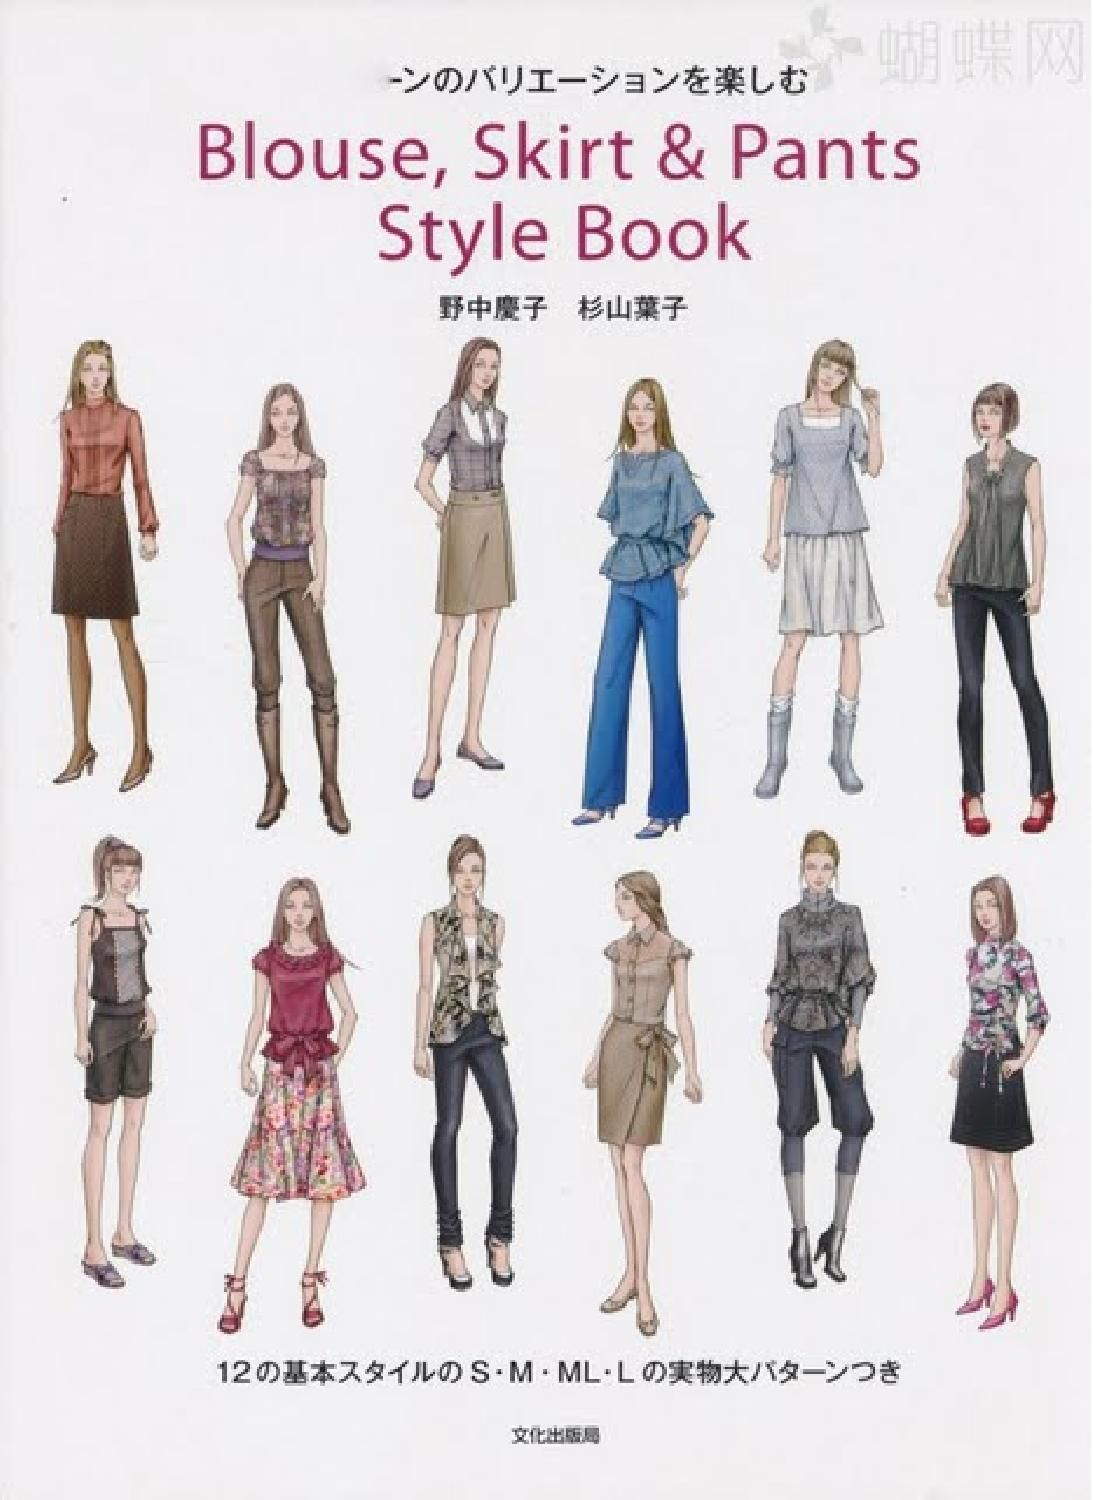 Blouse, Skirt & Pants Style Book by Bunka | Patronaje, Libros y Costura